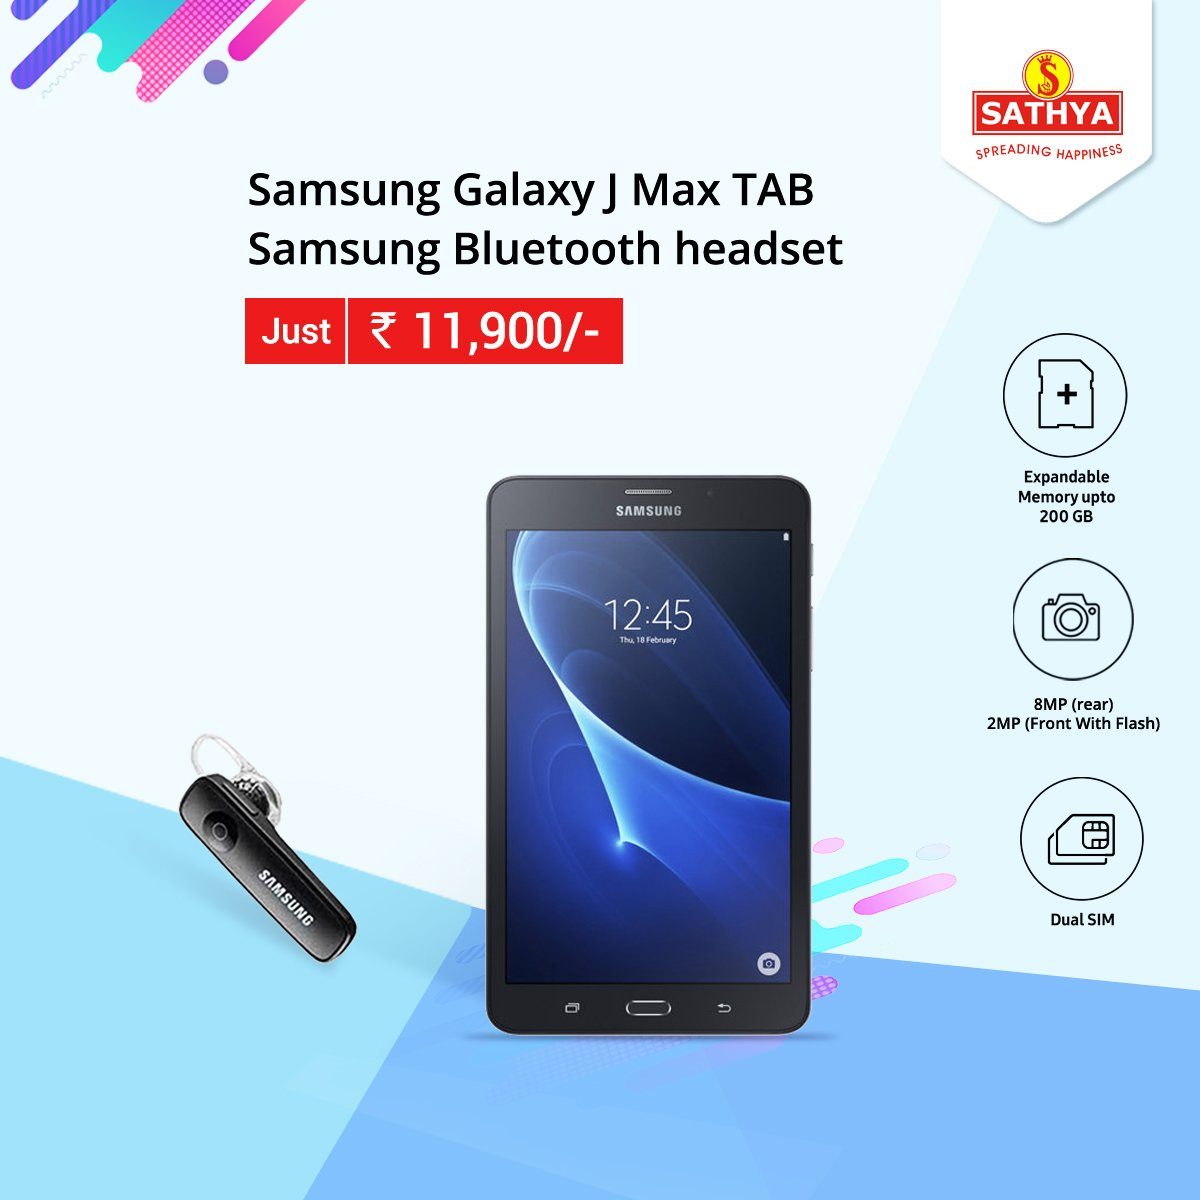 c4ba369ce Buy  Samsung Galaxy   Max Tab at Best price Sathya offers amazing offers  and discounts Also